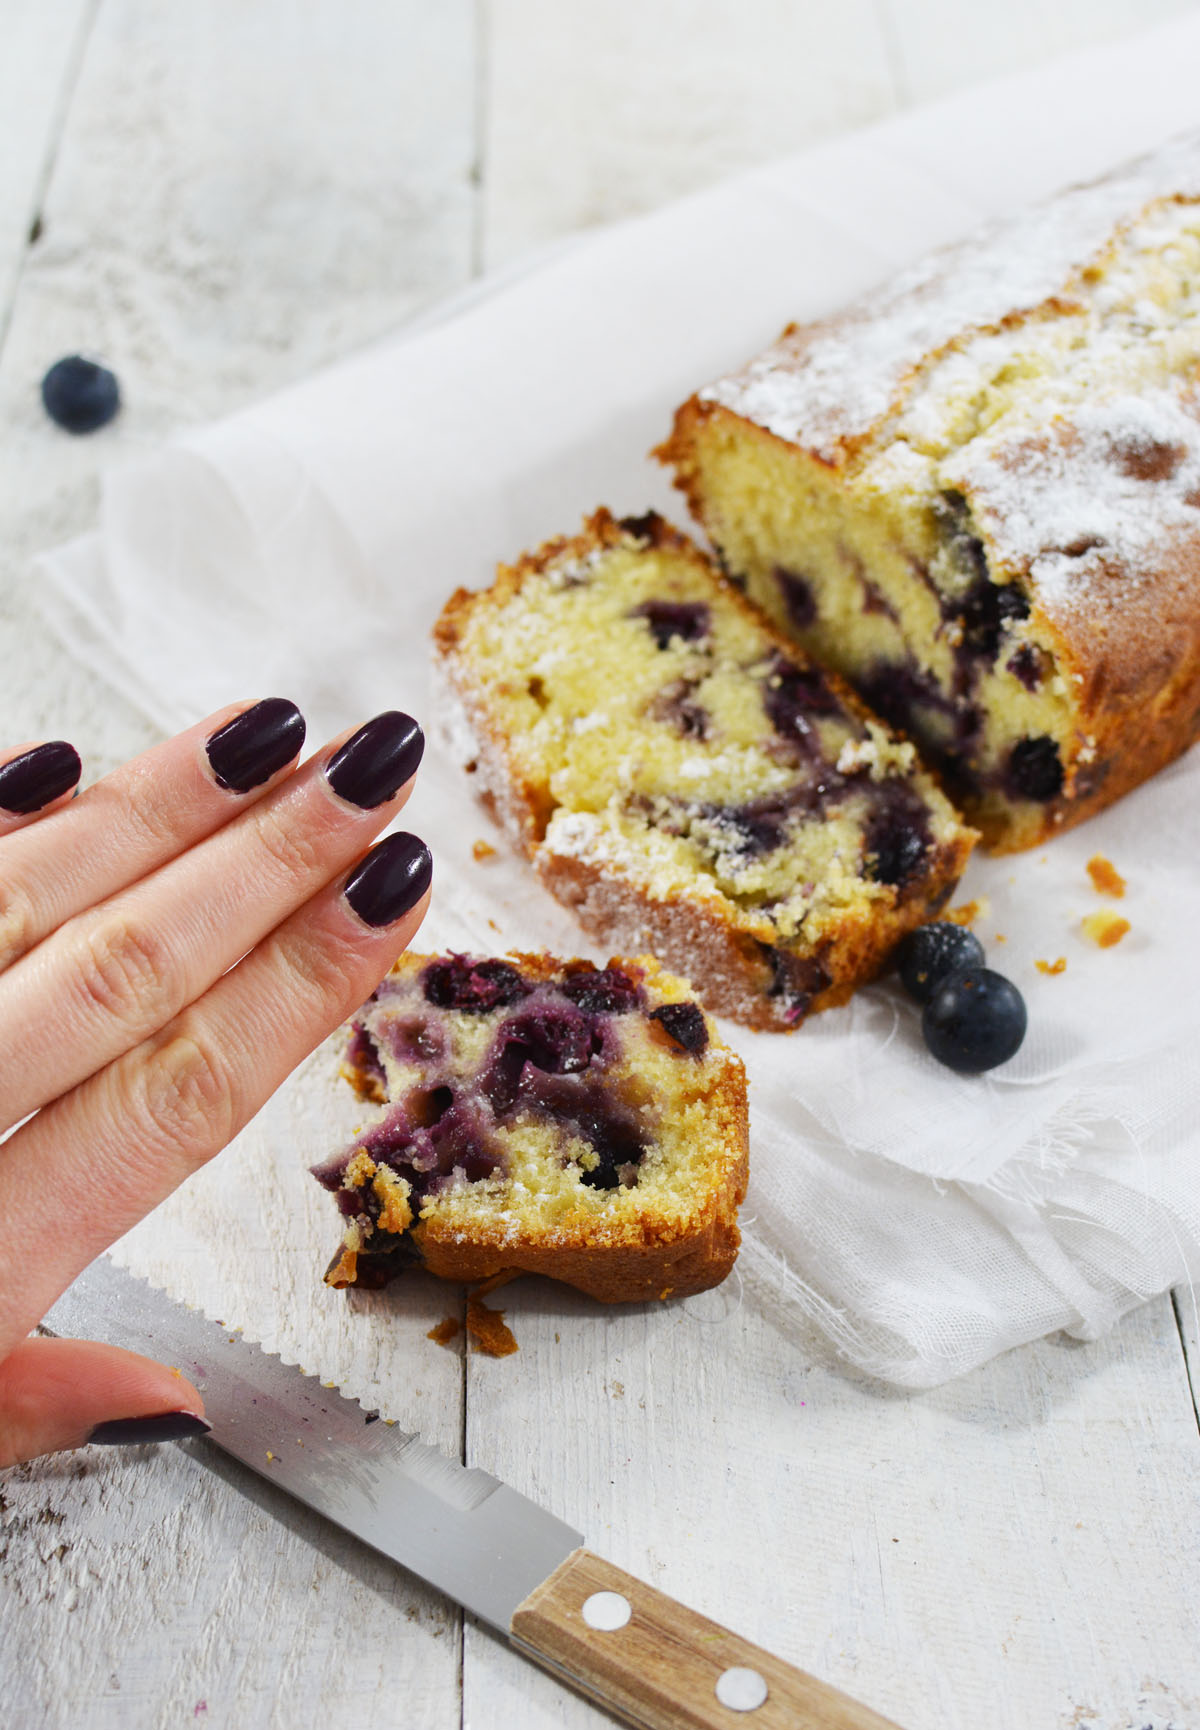 Blueberry yoghurt cake 8